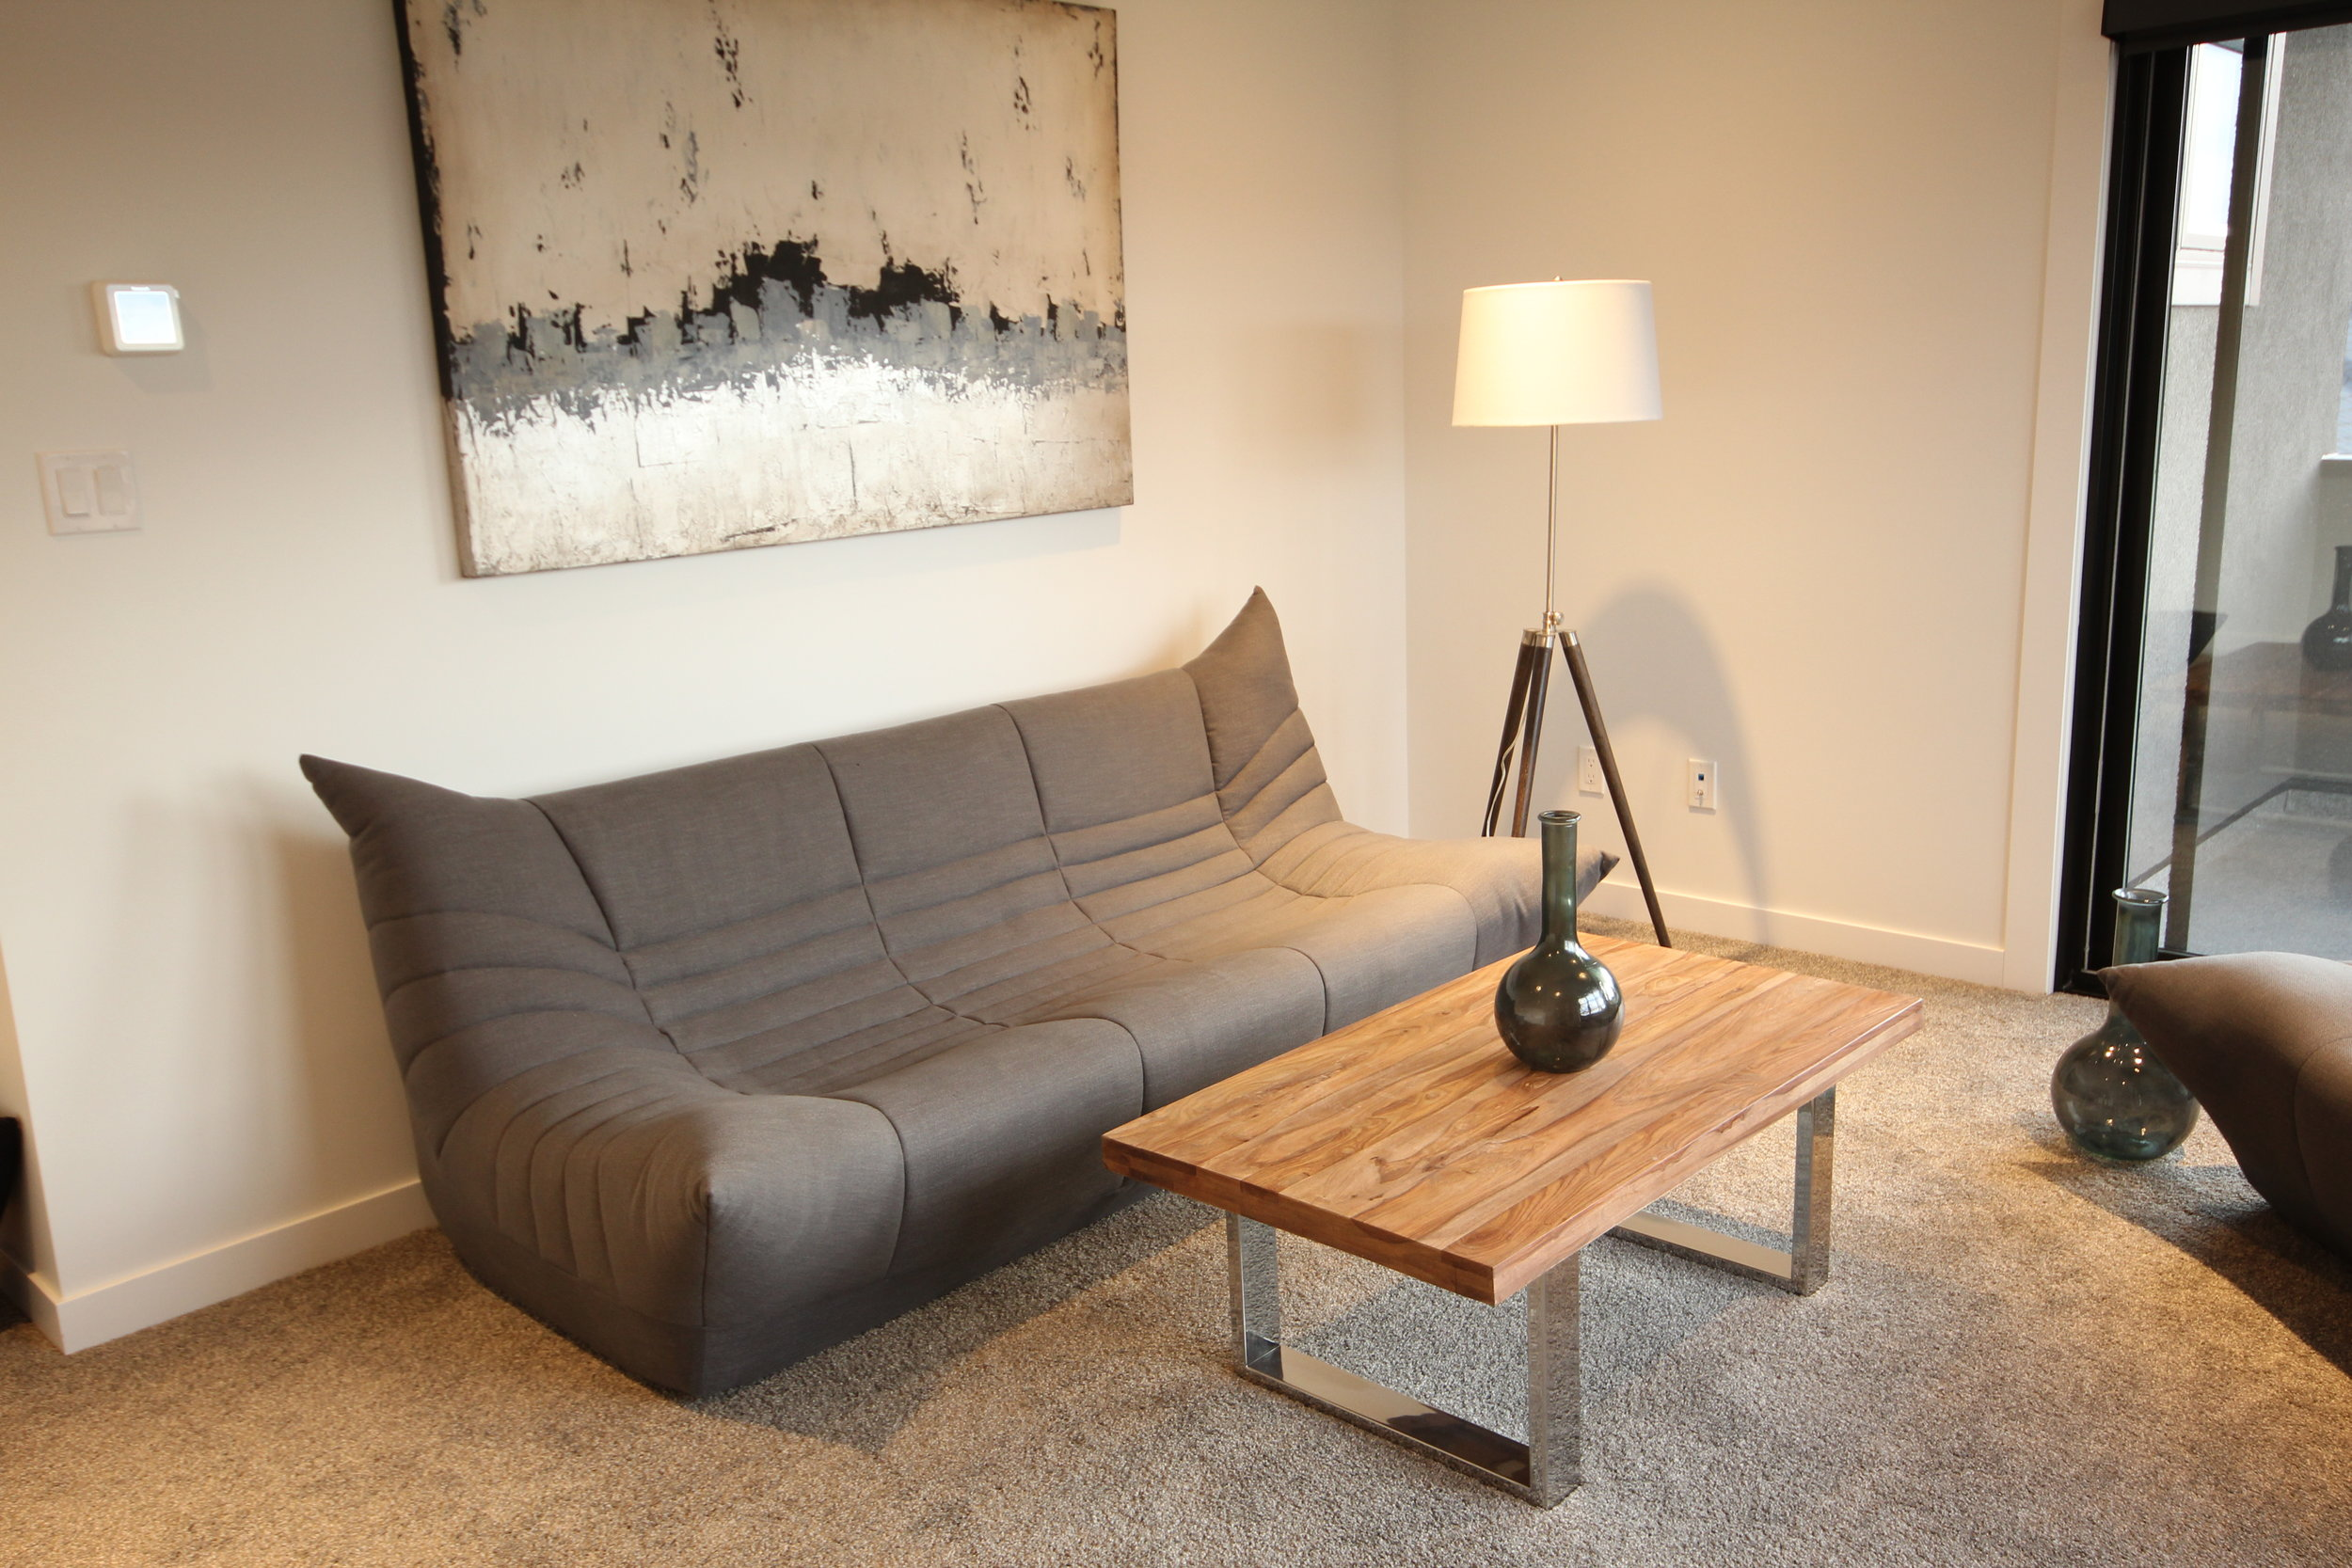 Copy of artista show home furniture done by Blue Moon Furniture. Wolseley sofa set